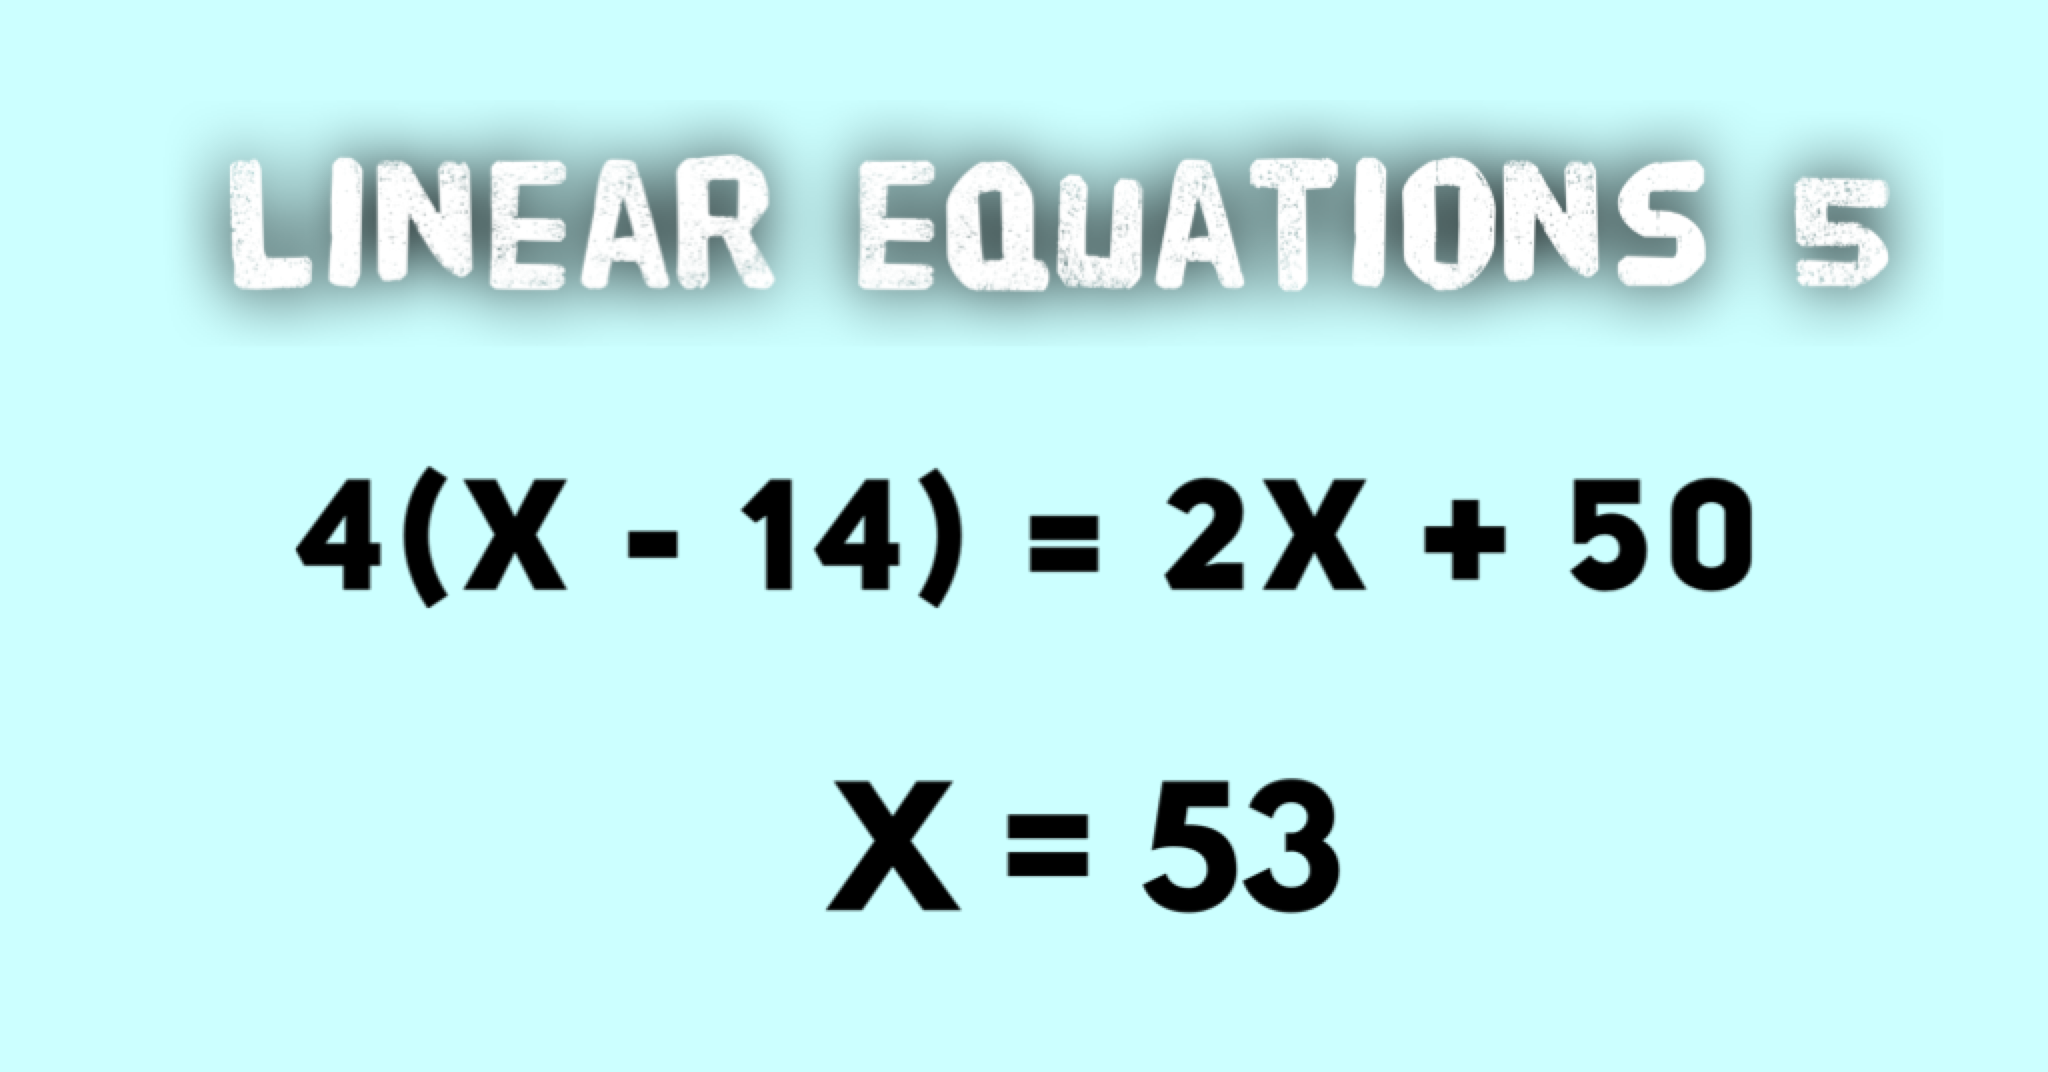 Linear Equations Example 5